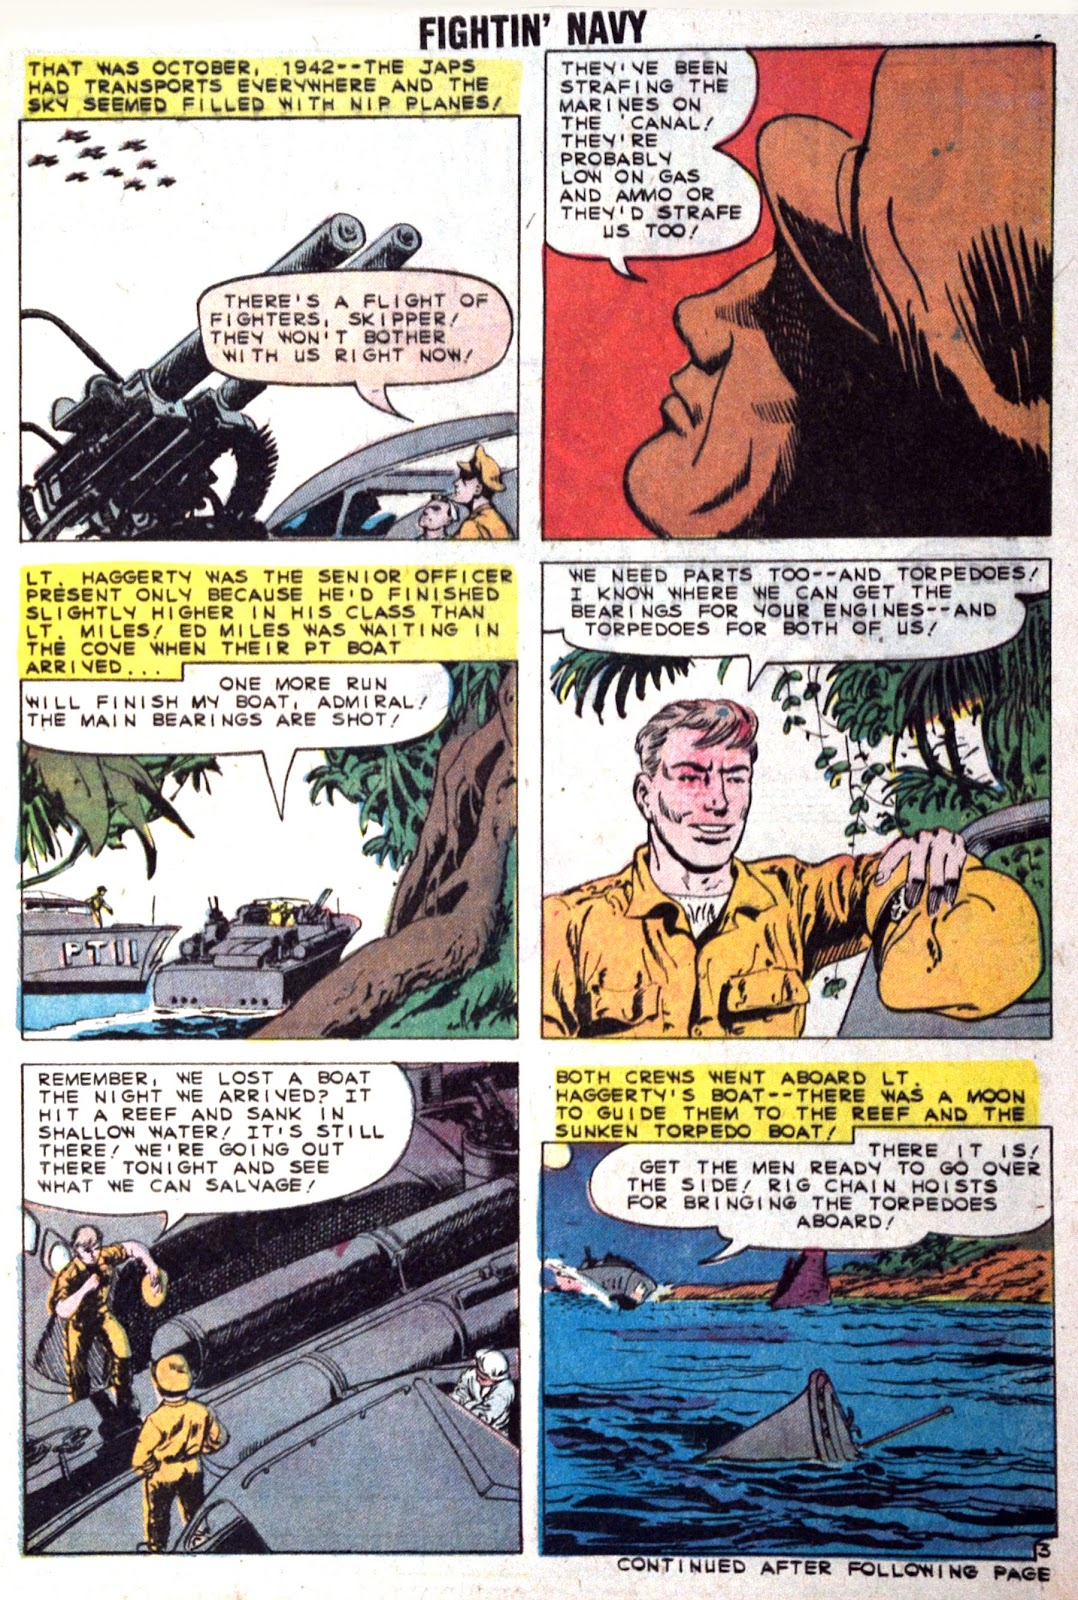 Read online Fightin' Navy comic -  Issue #89 - 5